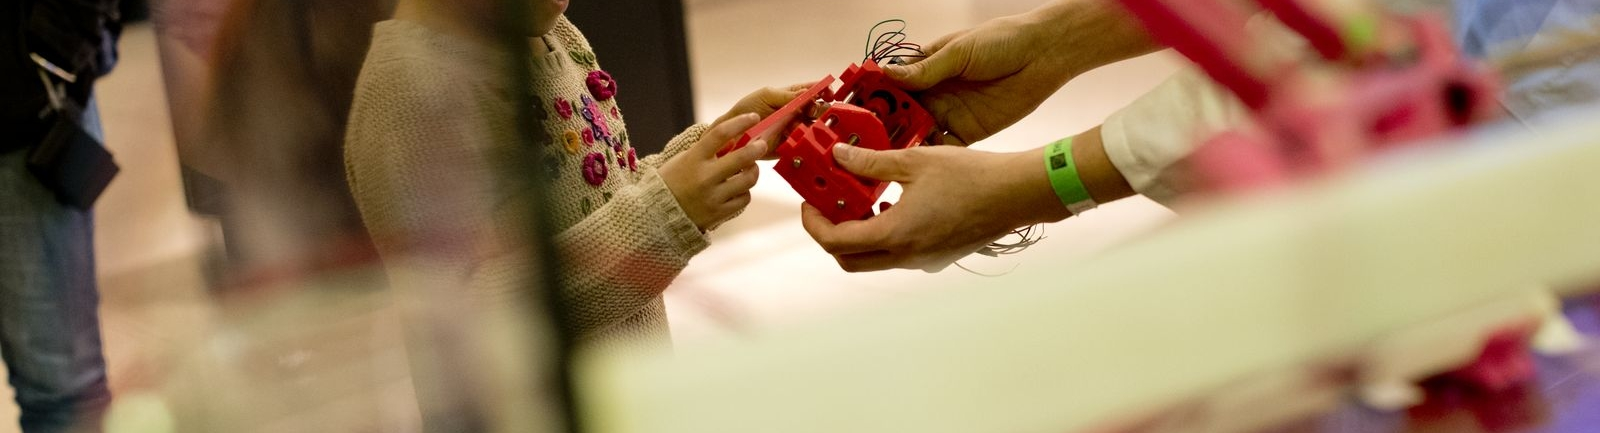 A Temple University professor shows a child a 3D-printed item.